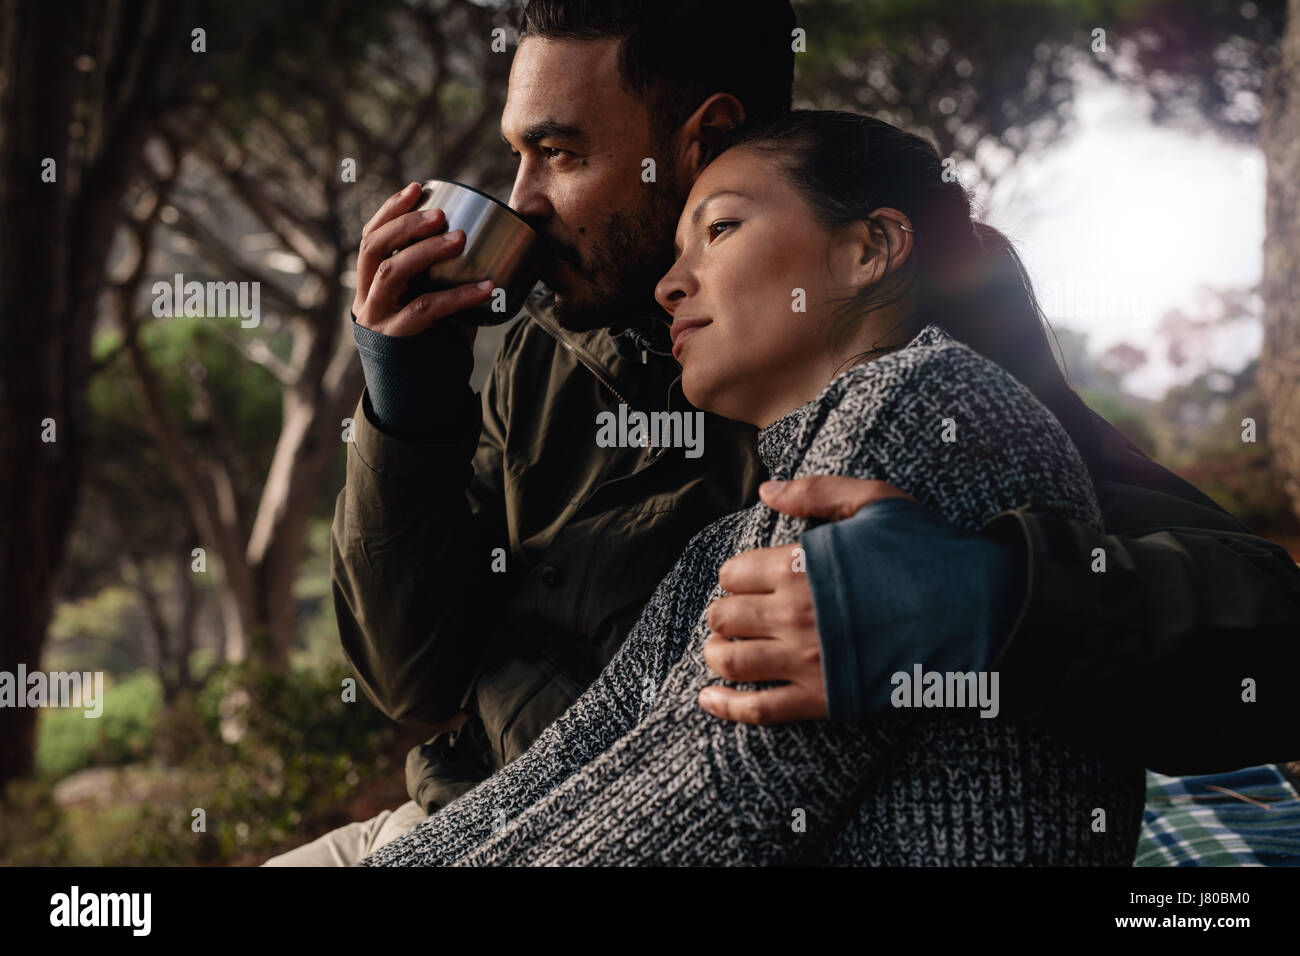 Young man and woman sitting outdoors. Relaxed young couple resting outdoors with man drinking coffee. Stock Photo